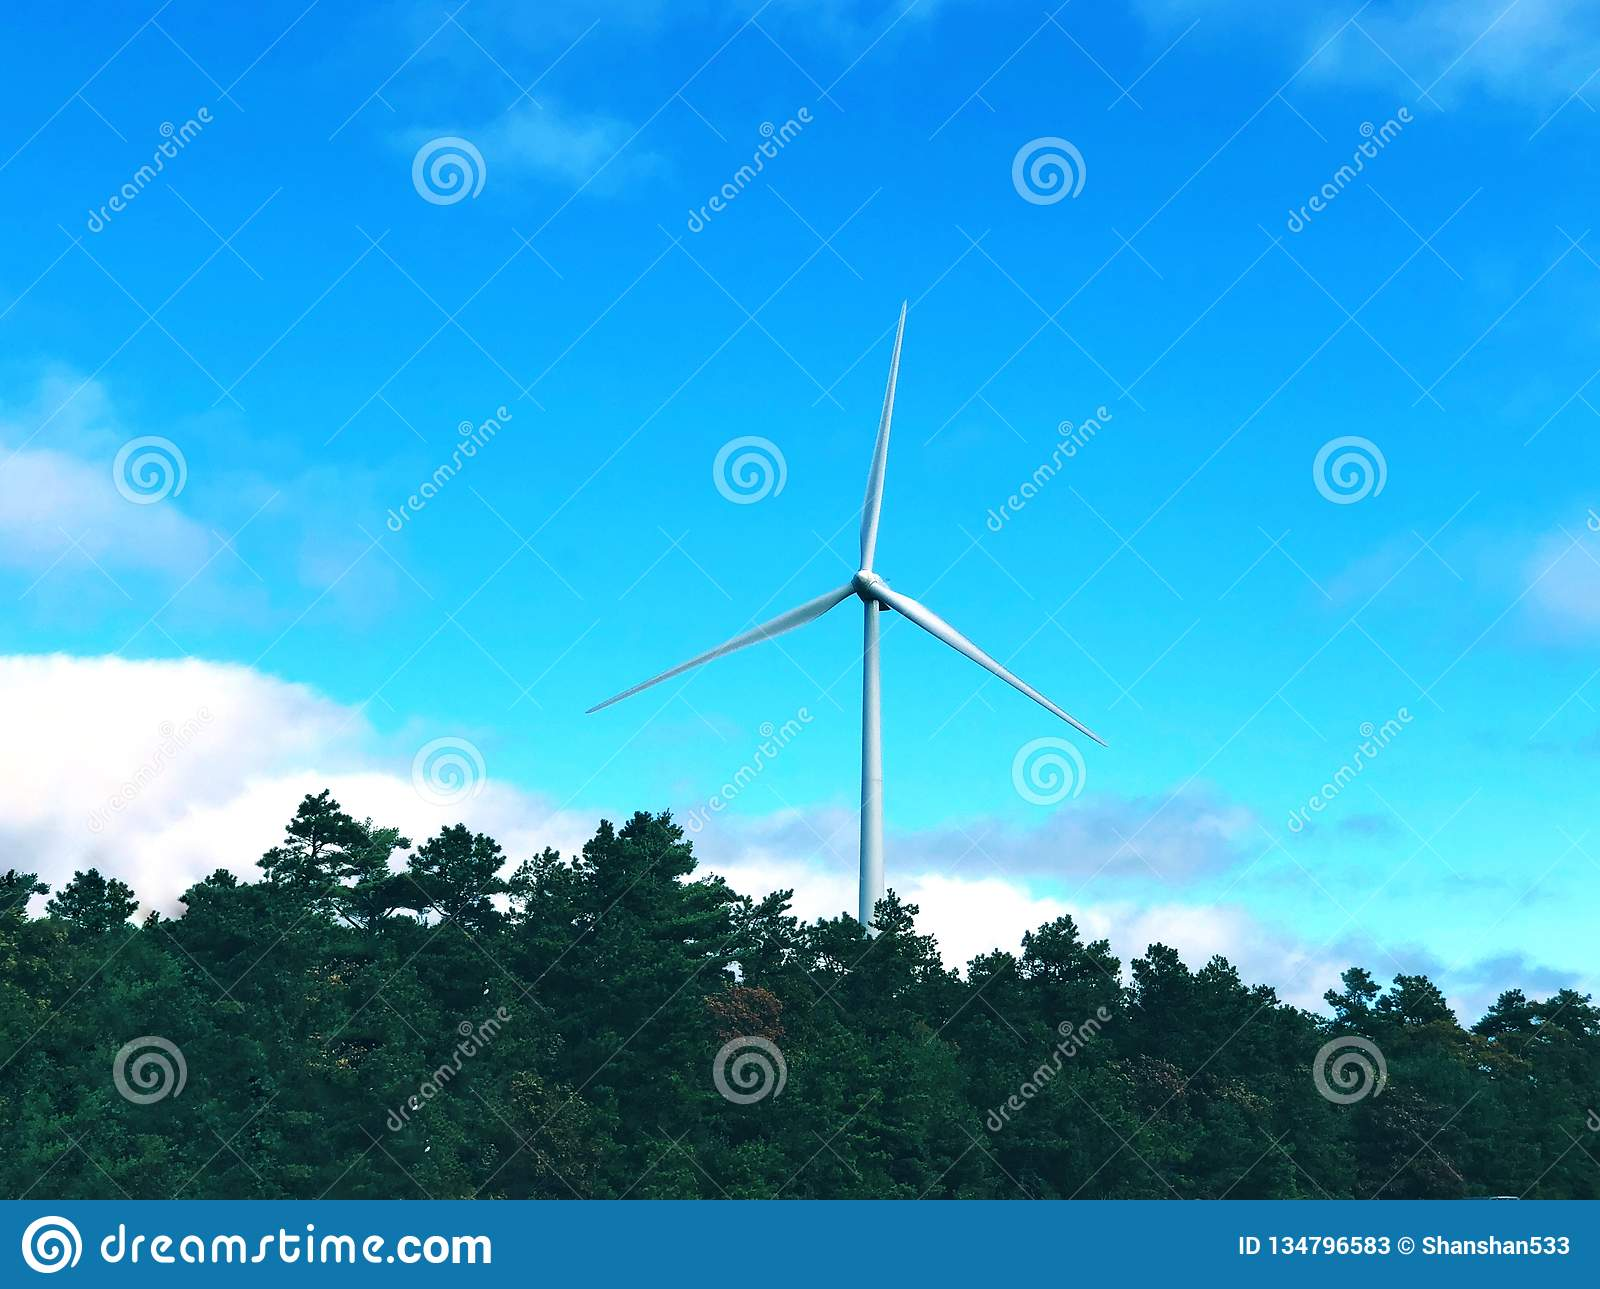 A white single wind generating by the highway